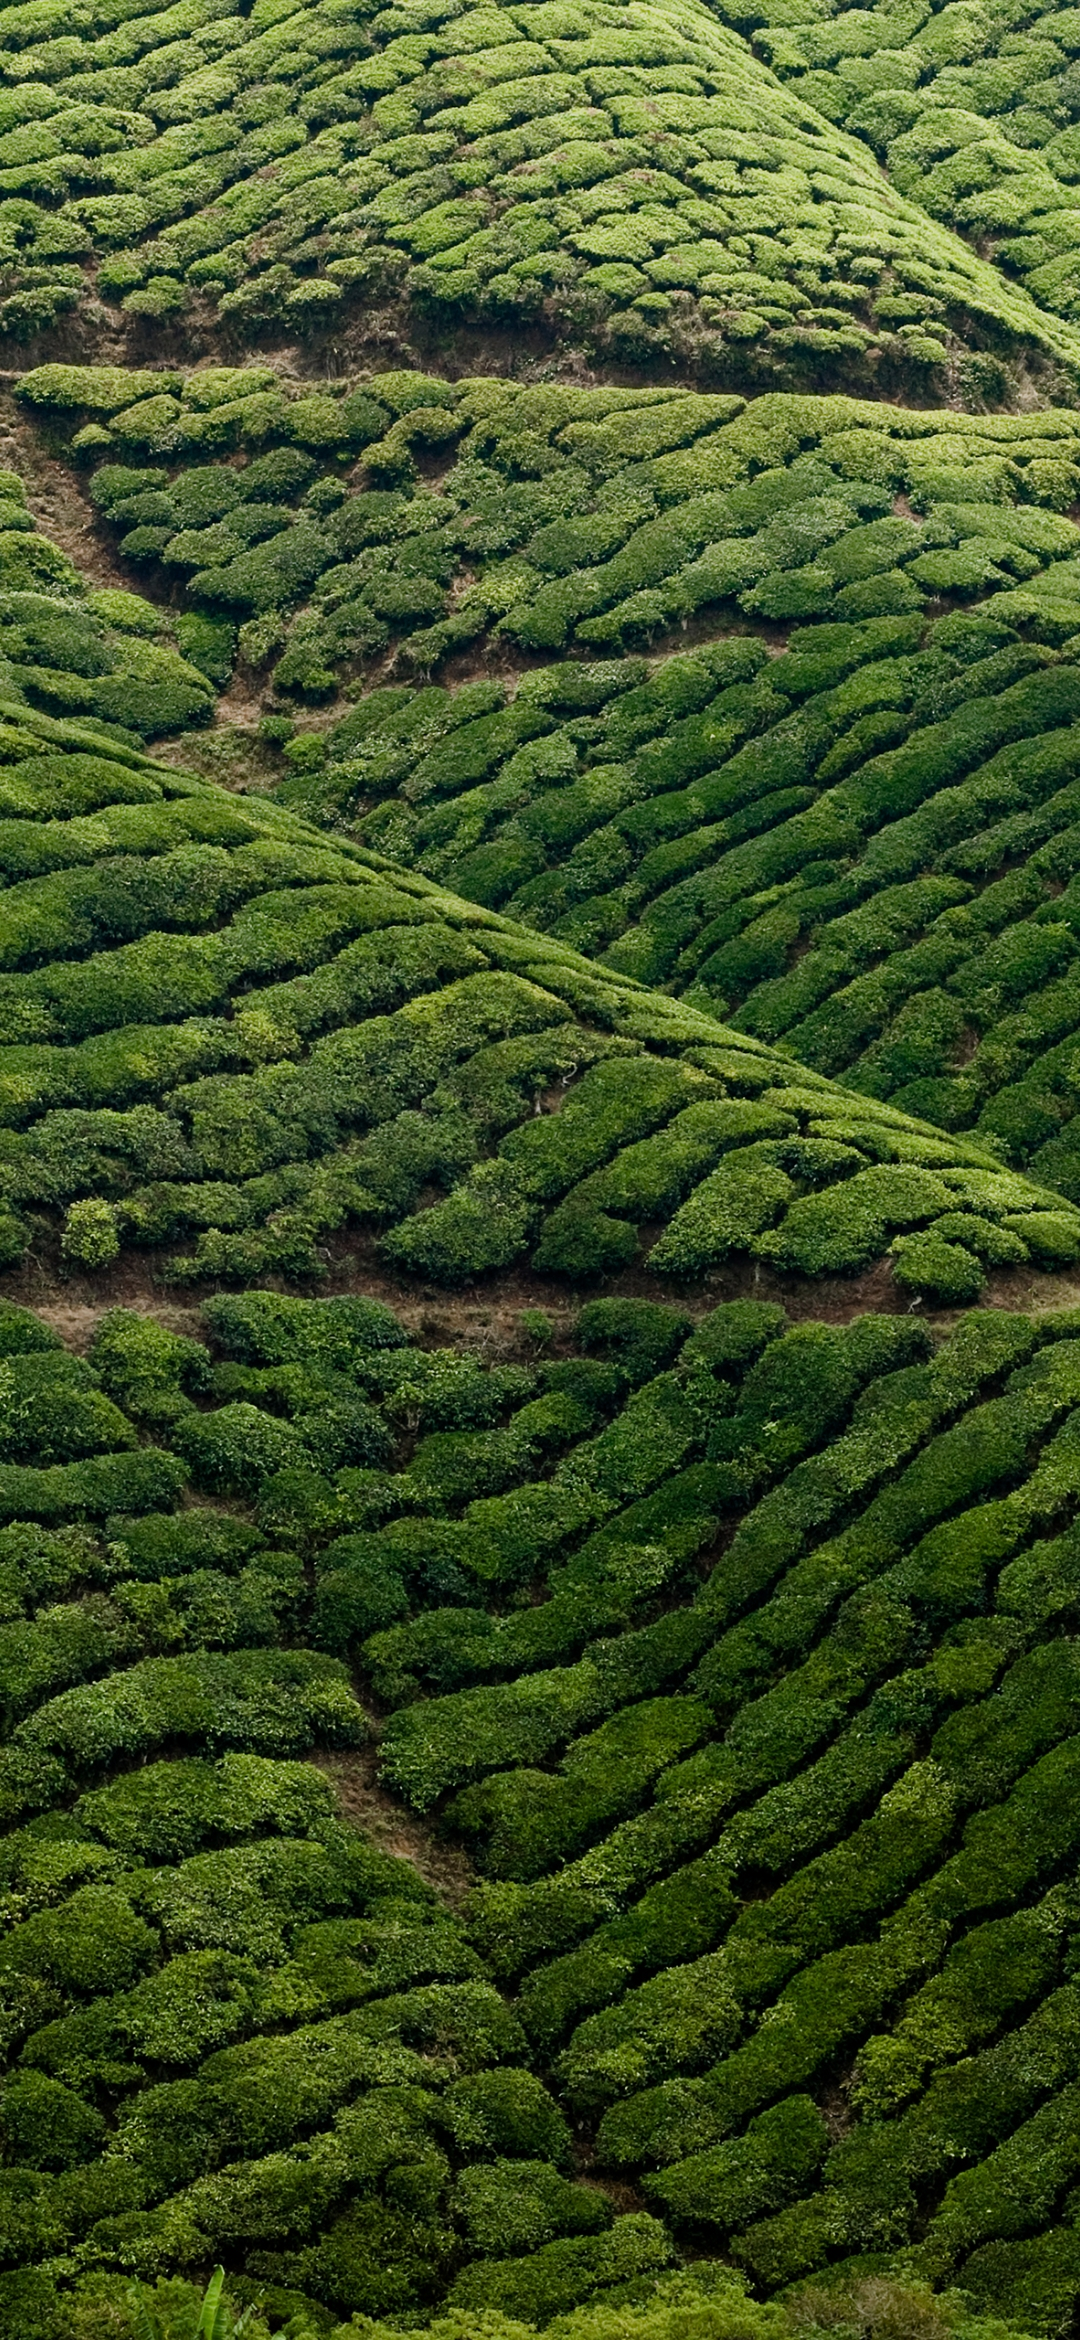 Aerial view of a tea estate